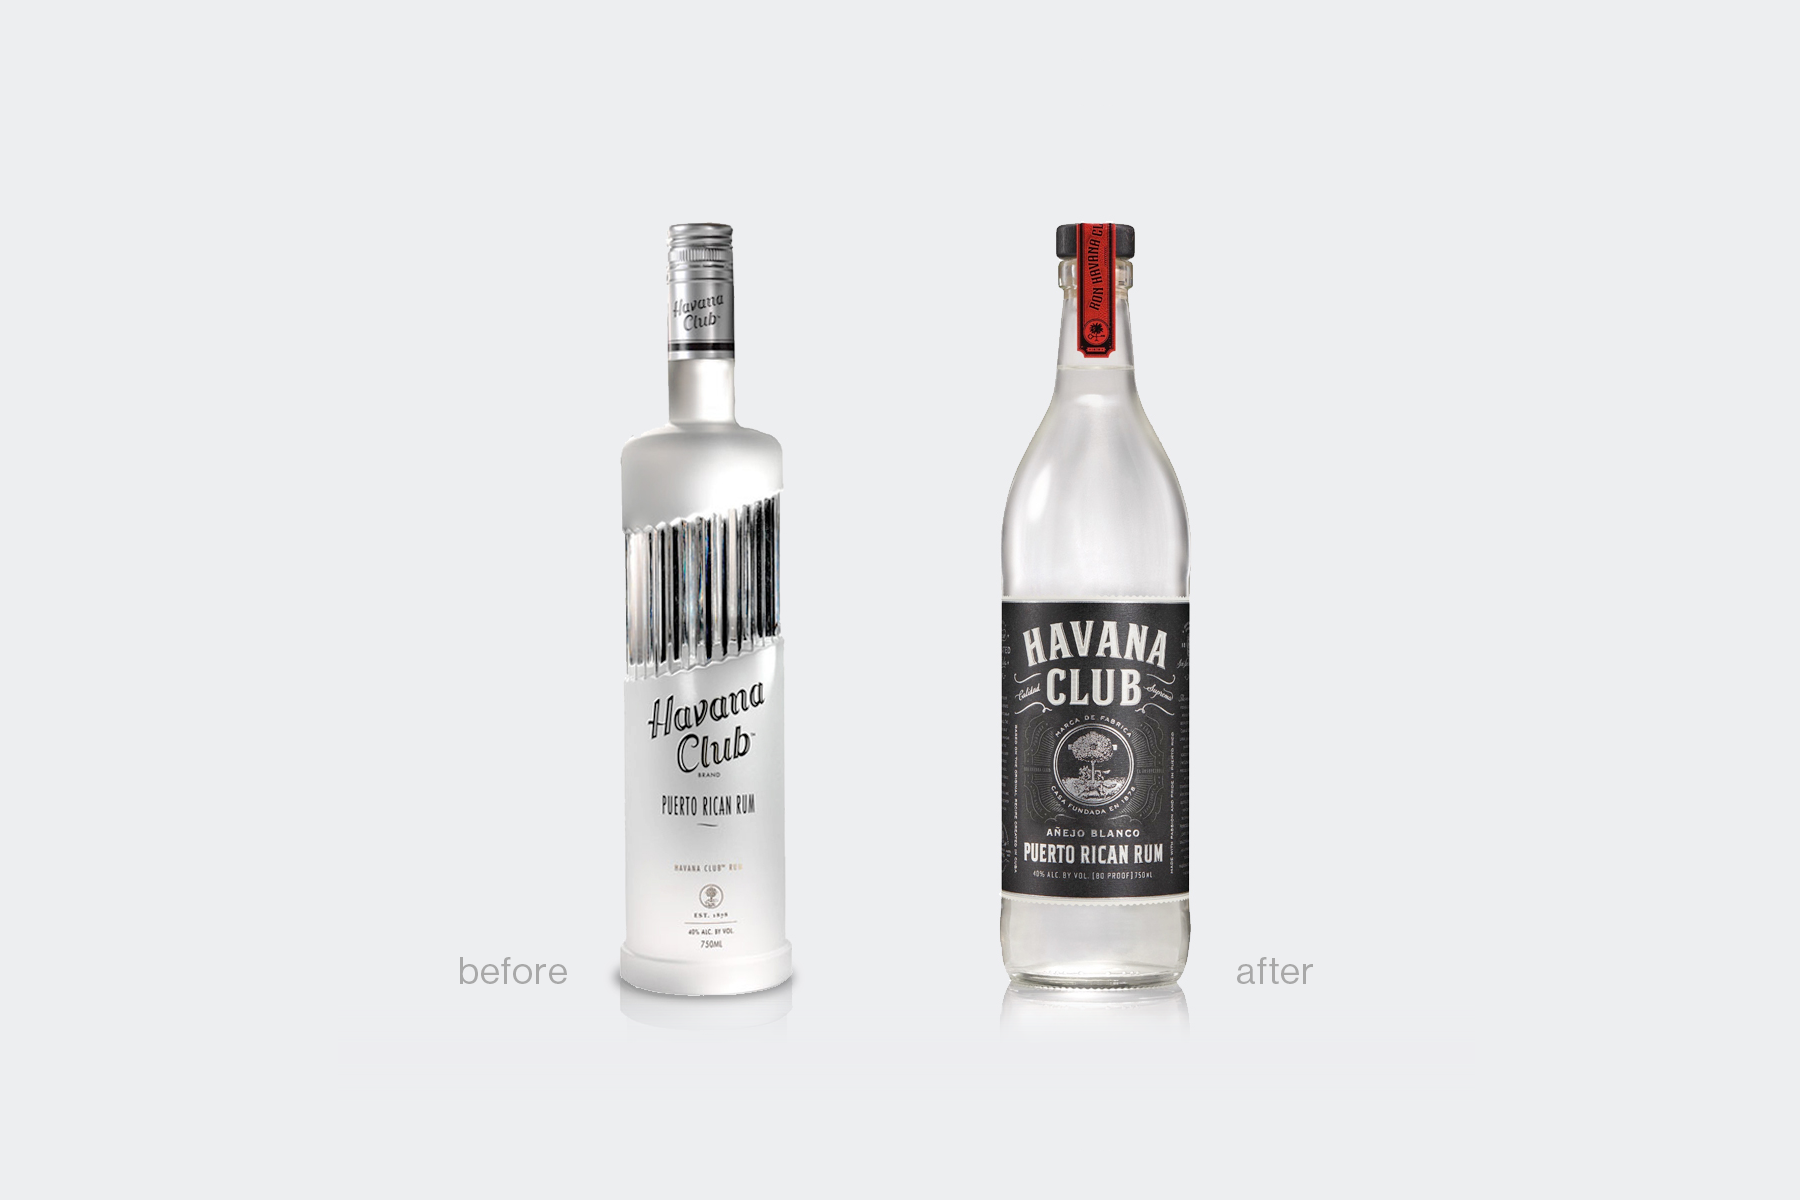 Havana club rum, before and after designed by Tara Lubonovich